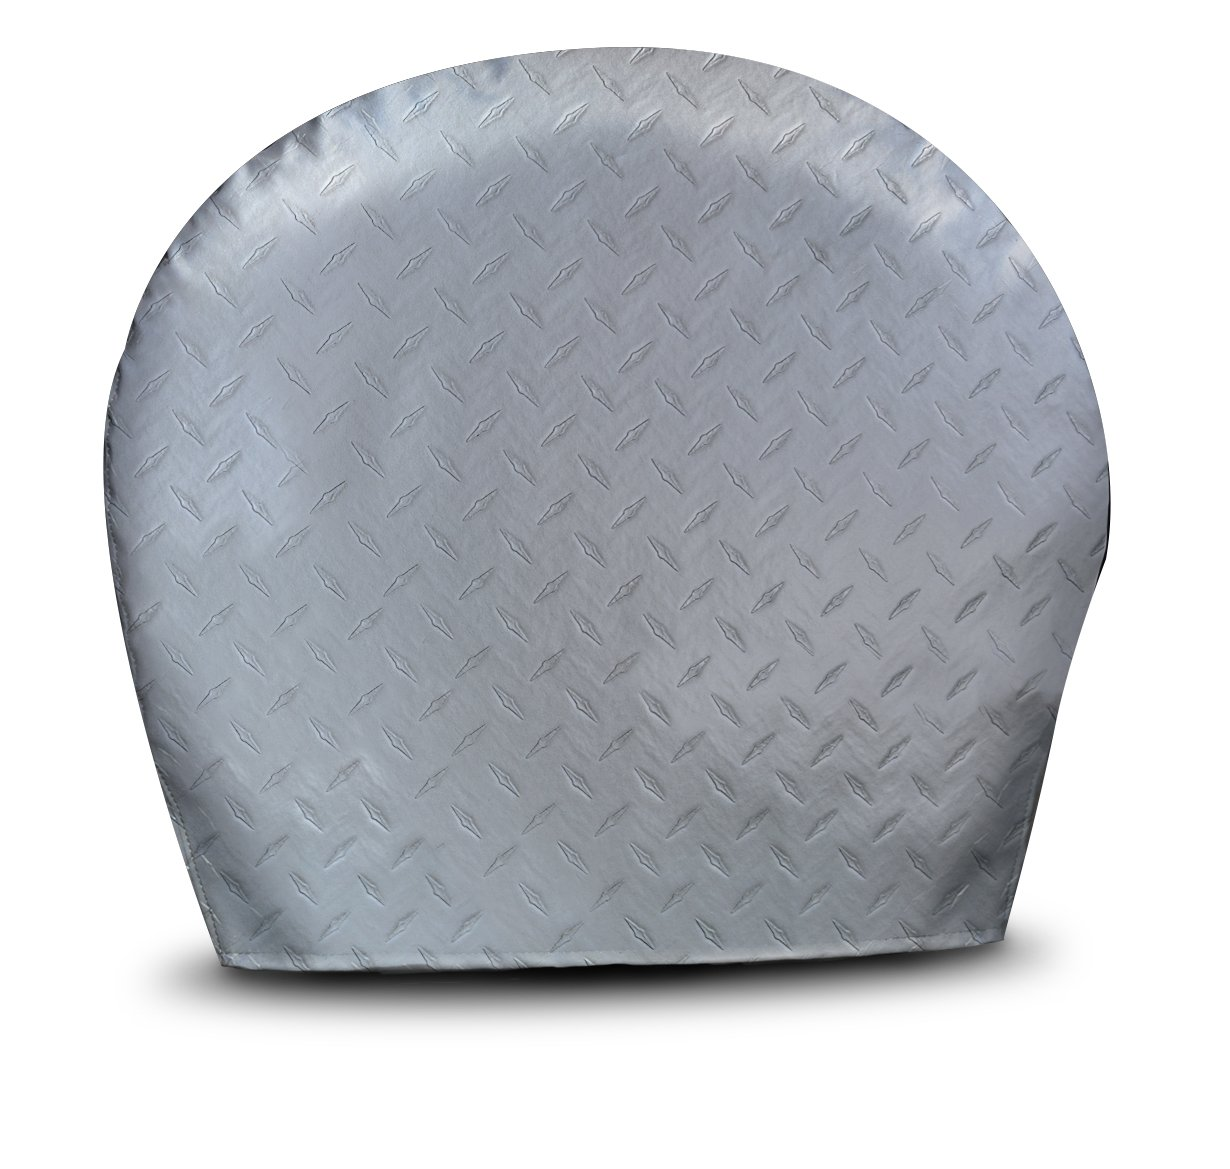 ADCO 3752 Silver #2 Diamond Plated Steel Vinyl Tyre Gard Wheel Cover, Set of 2 Fits 30-32